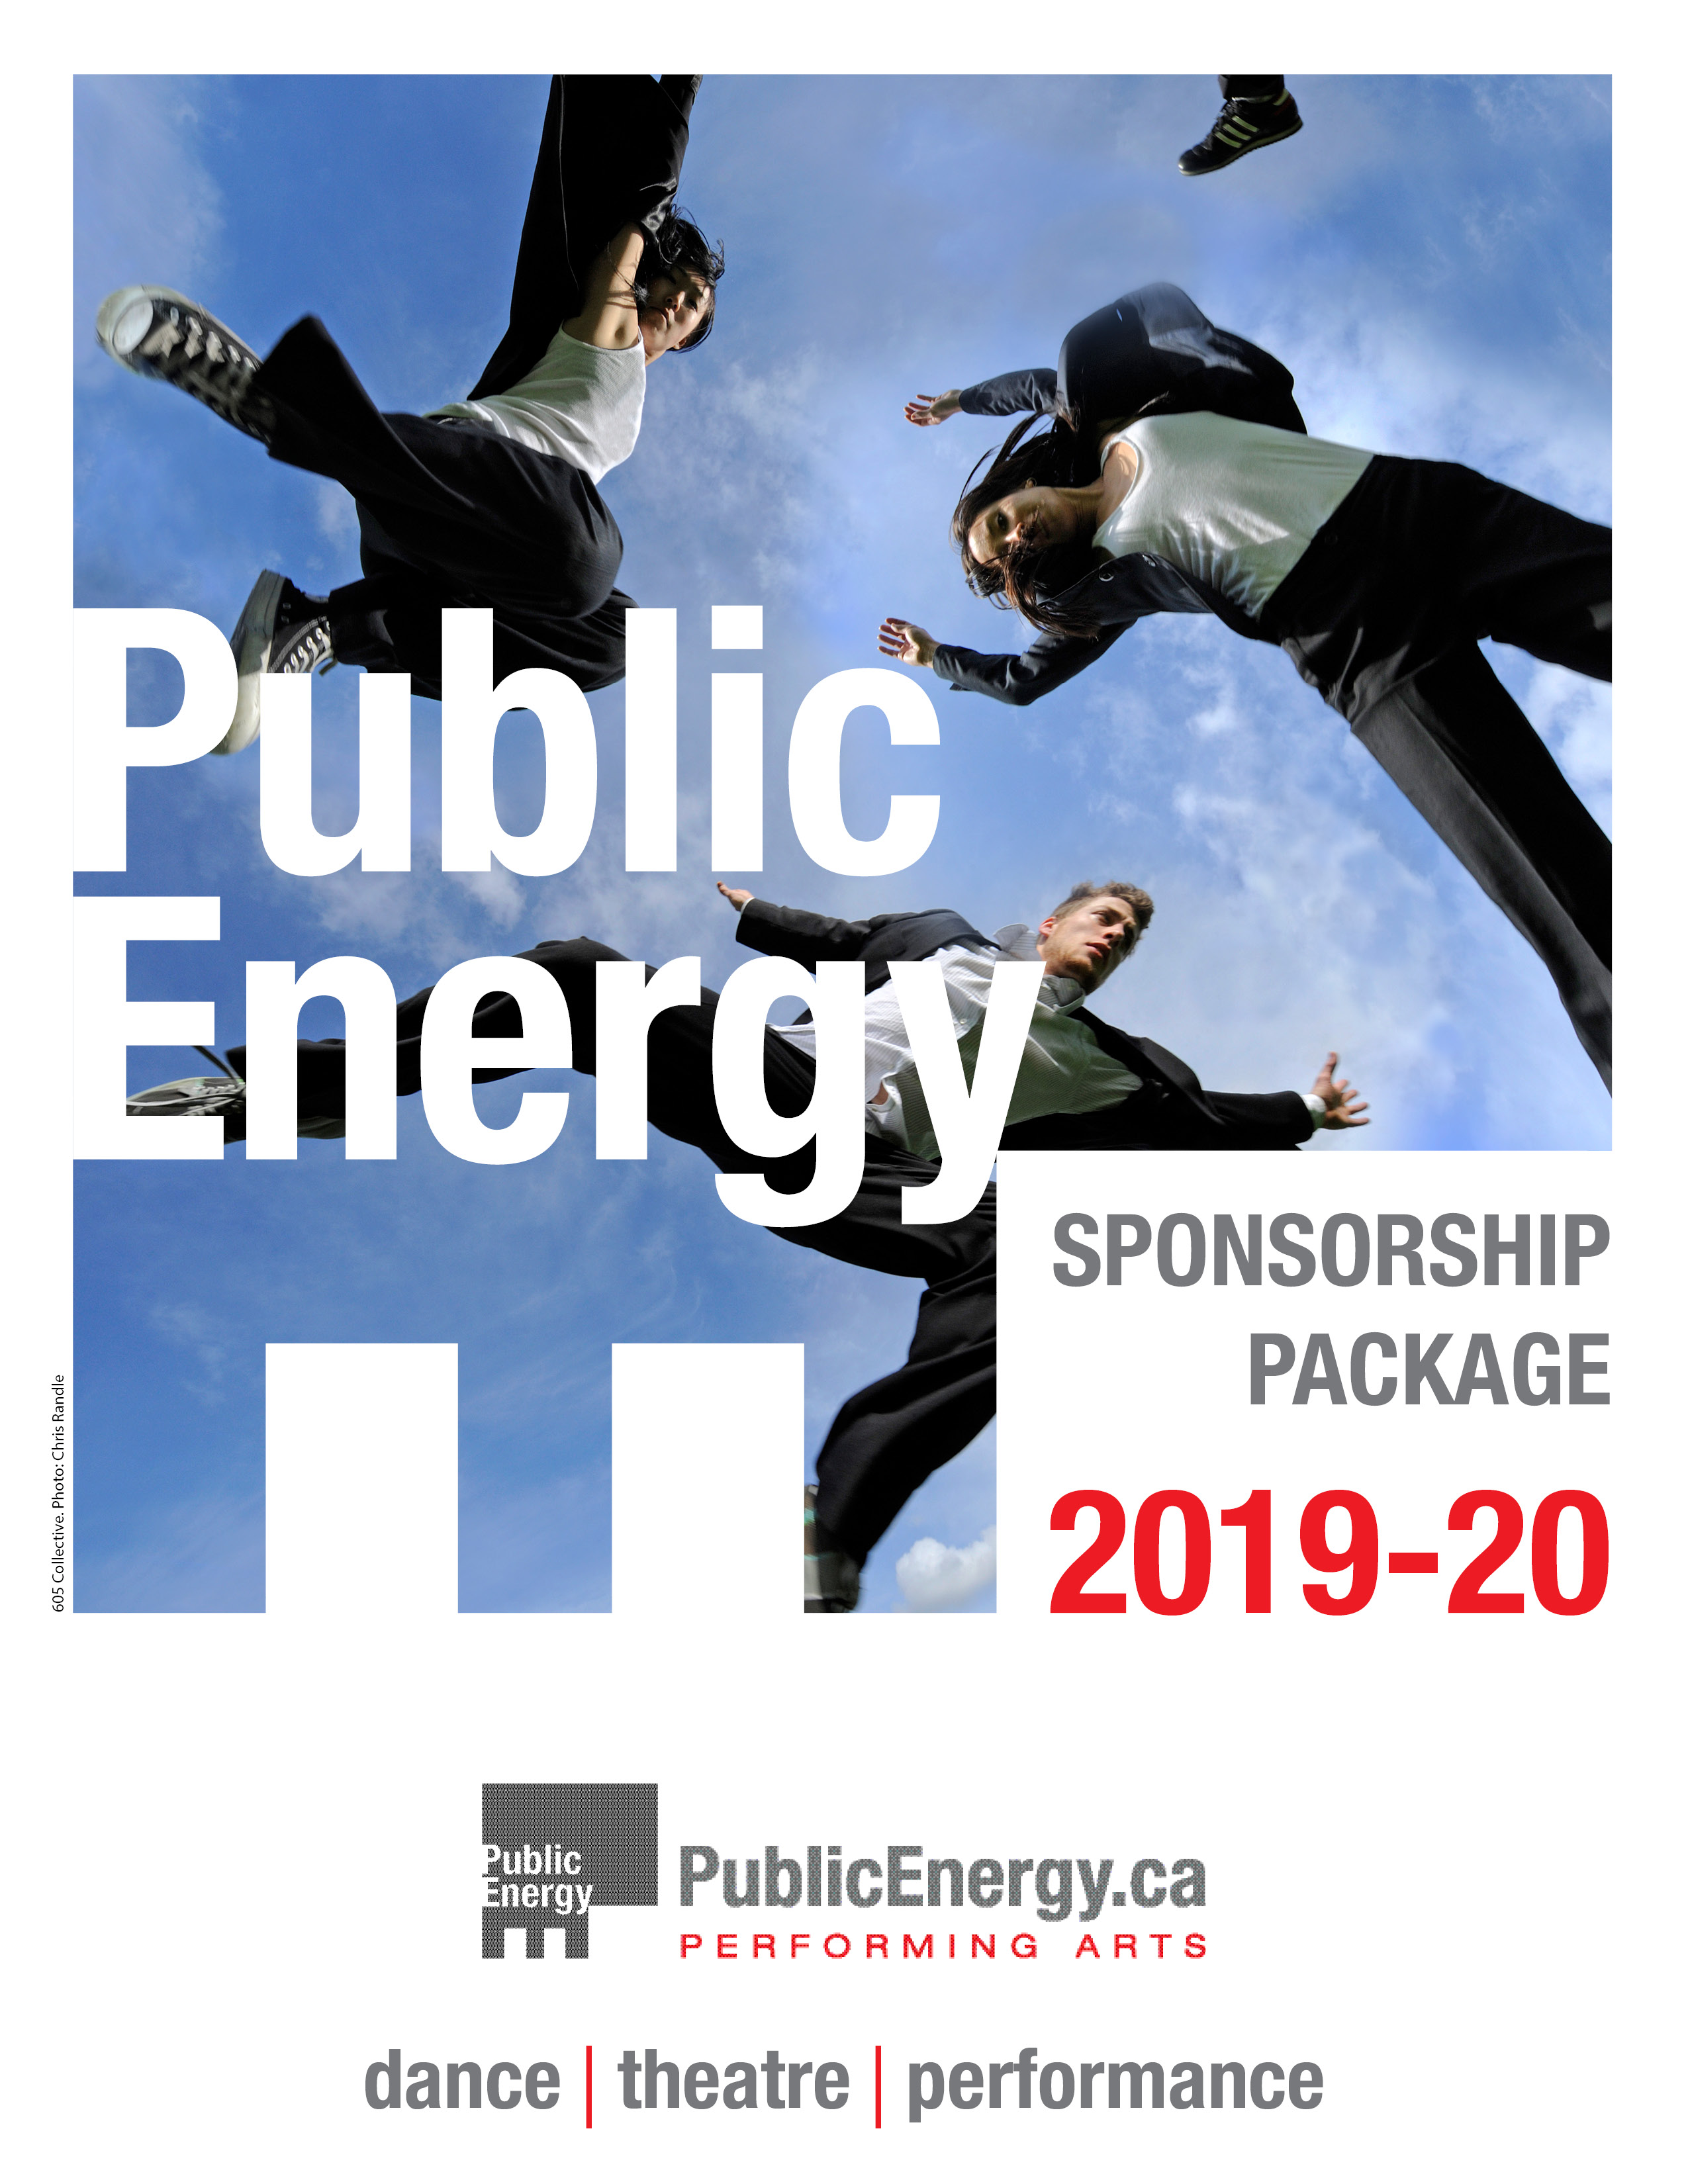 Public Energy sponsorship package